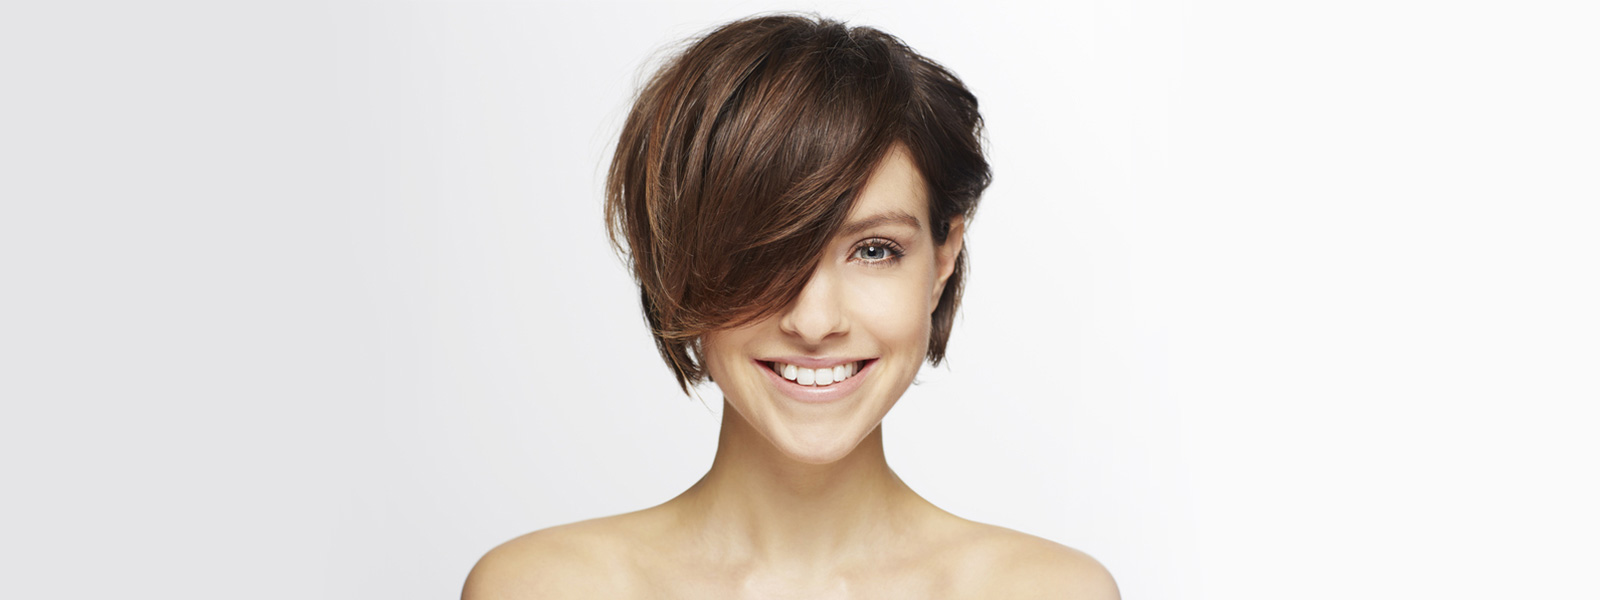 woman with short brown hair over her face smiling